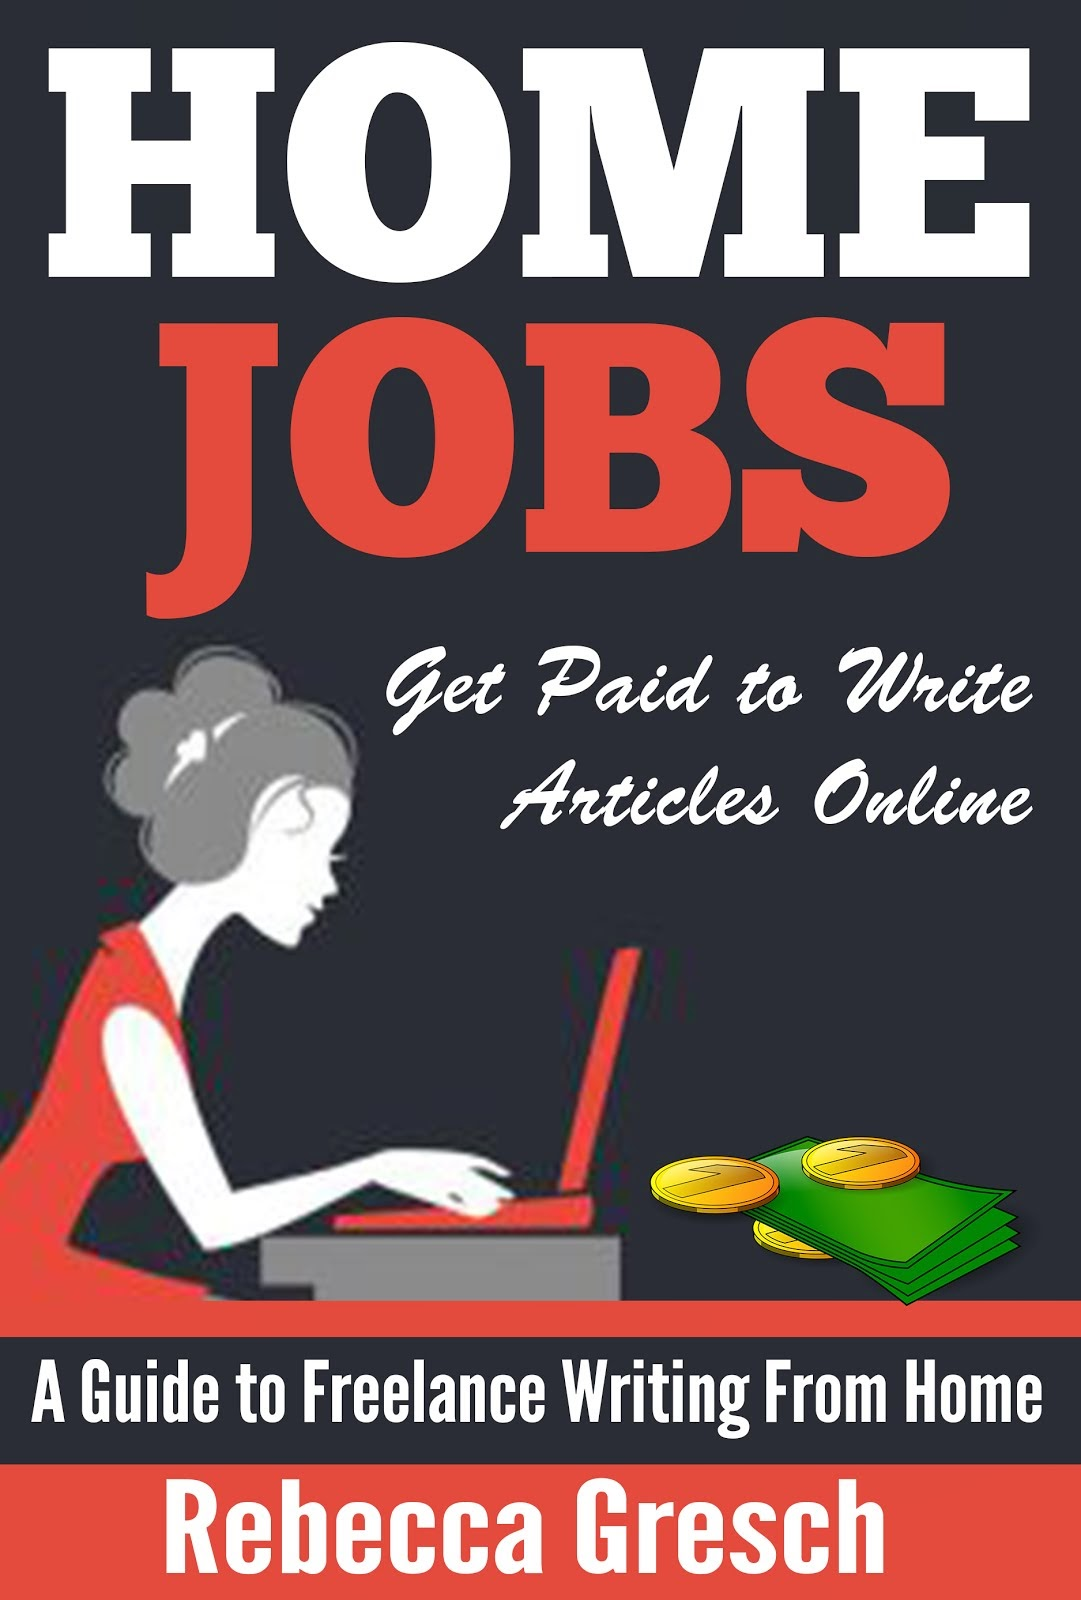 HOME JOBS: Get Paid to Write Articles Online